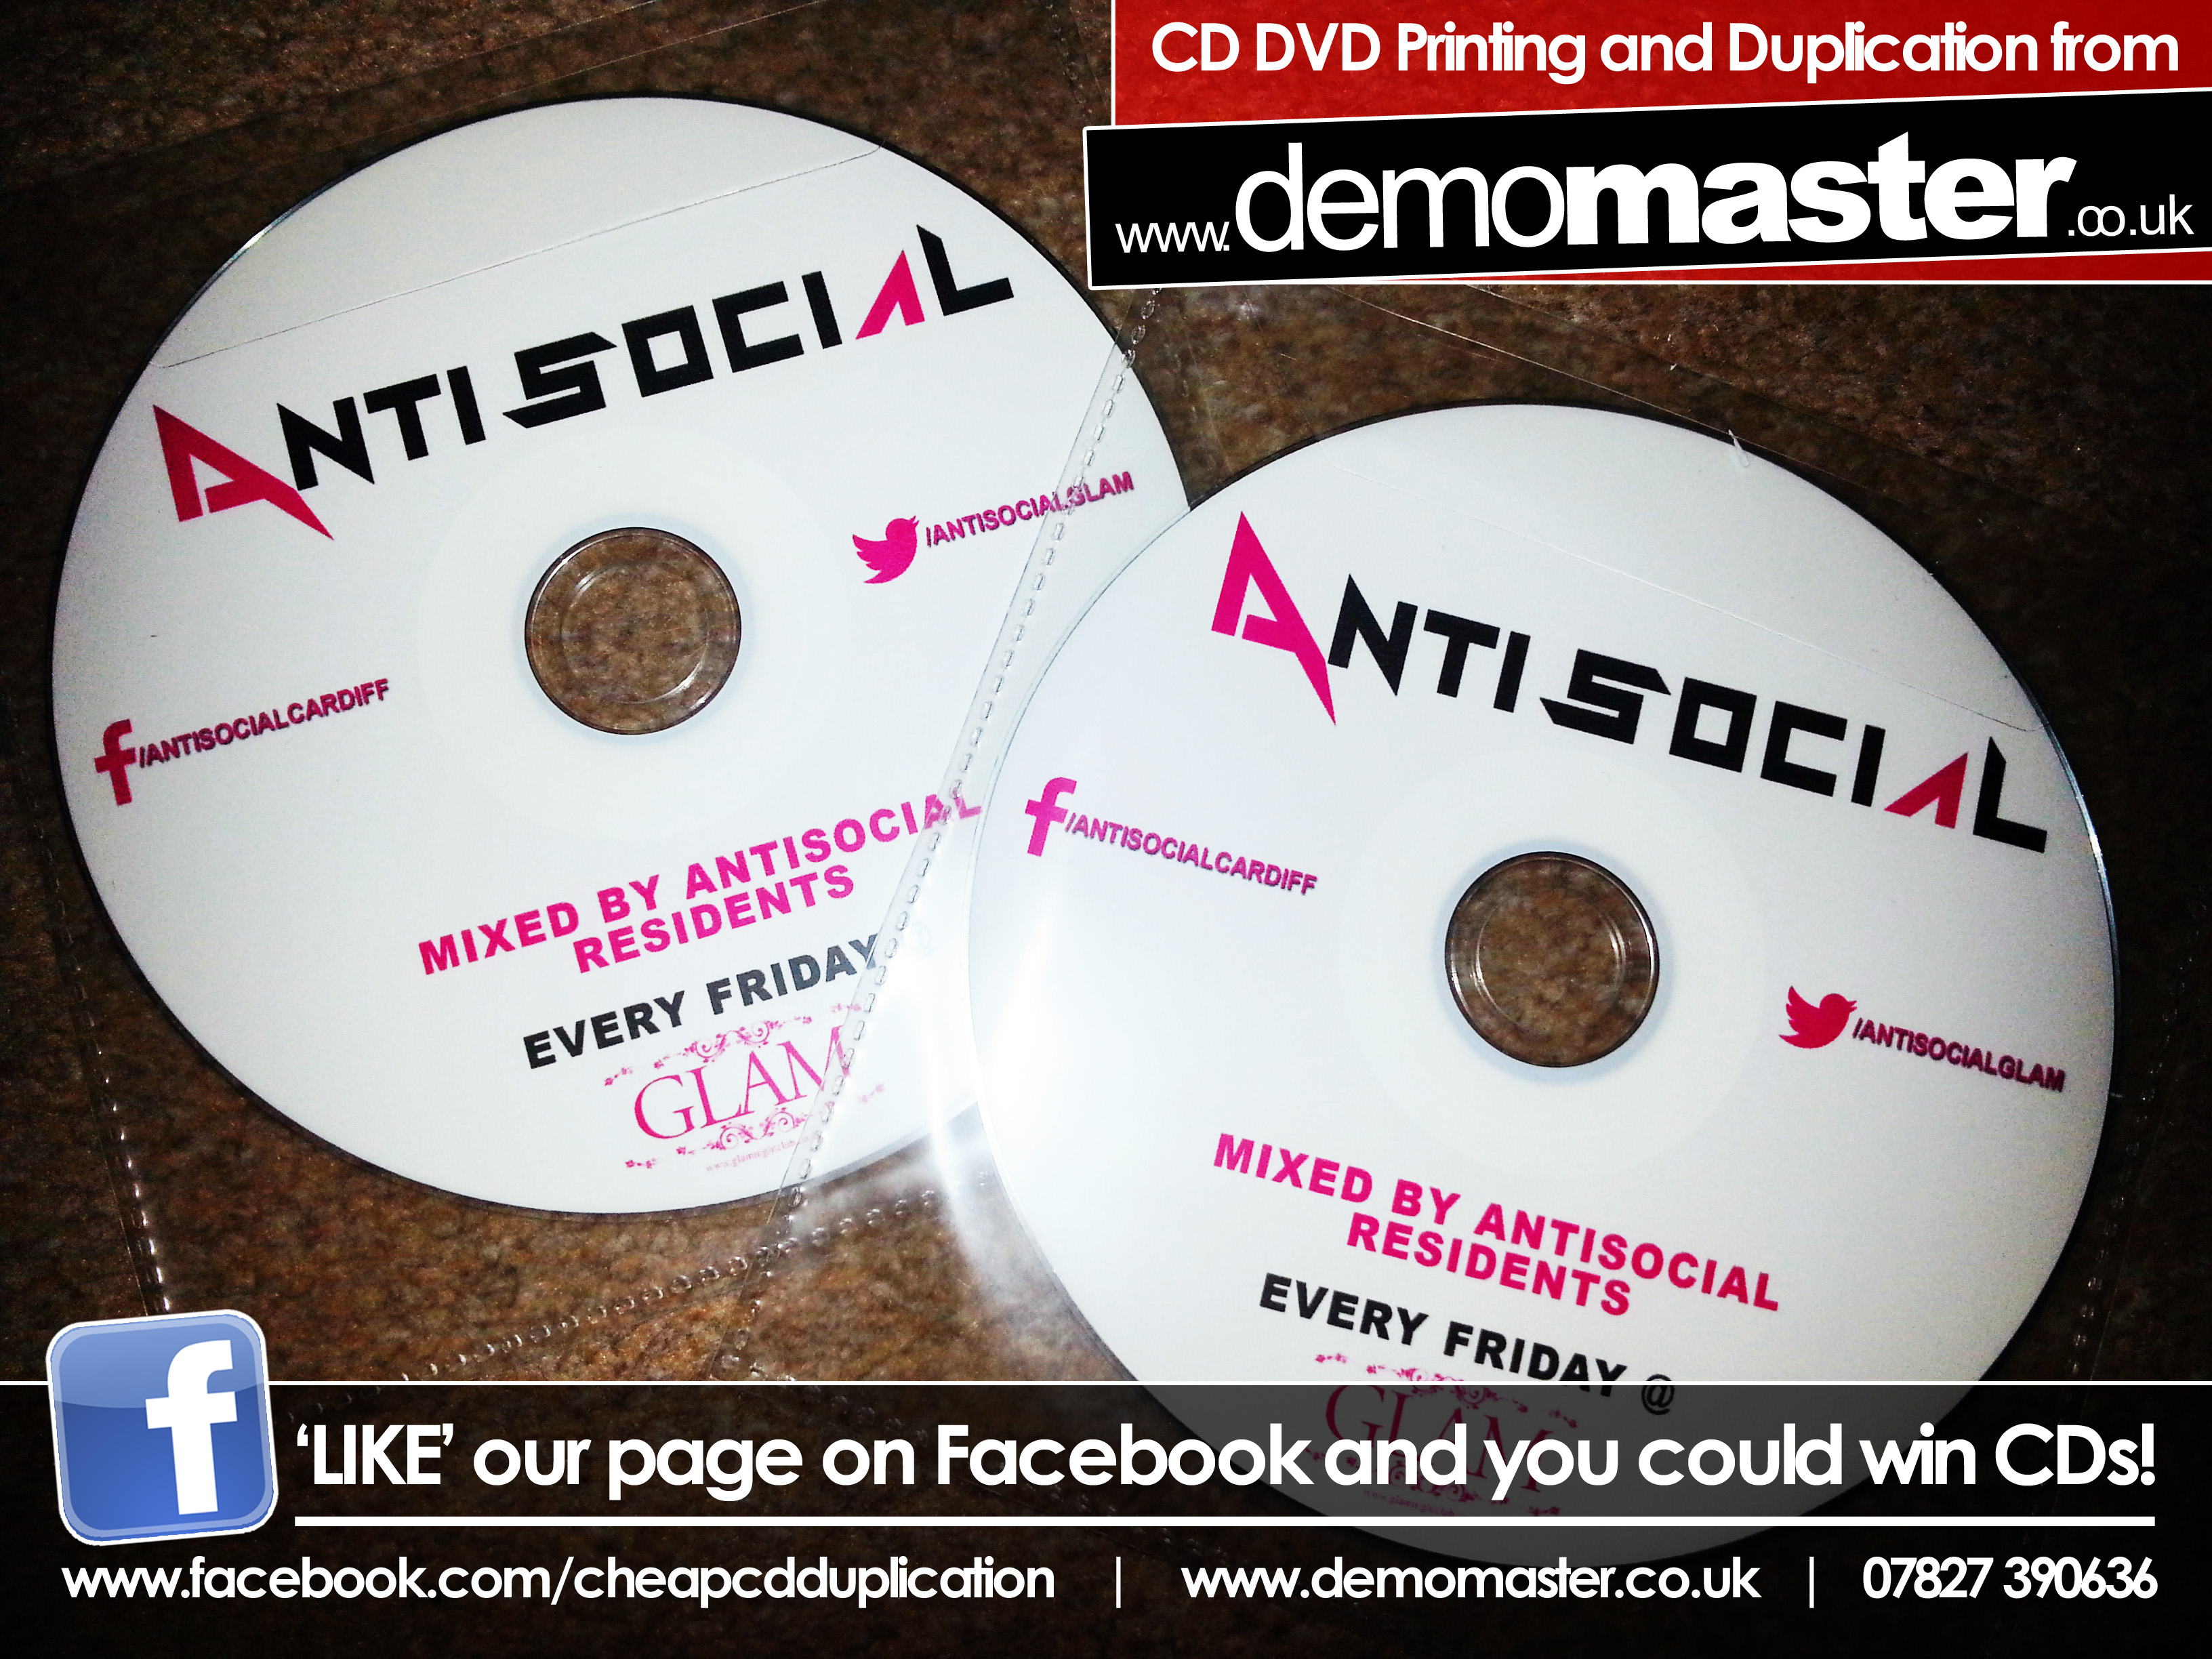 AntiSocial mixed by resident DJs